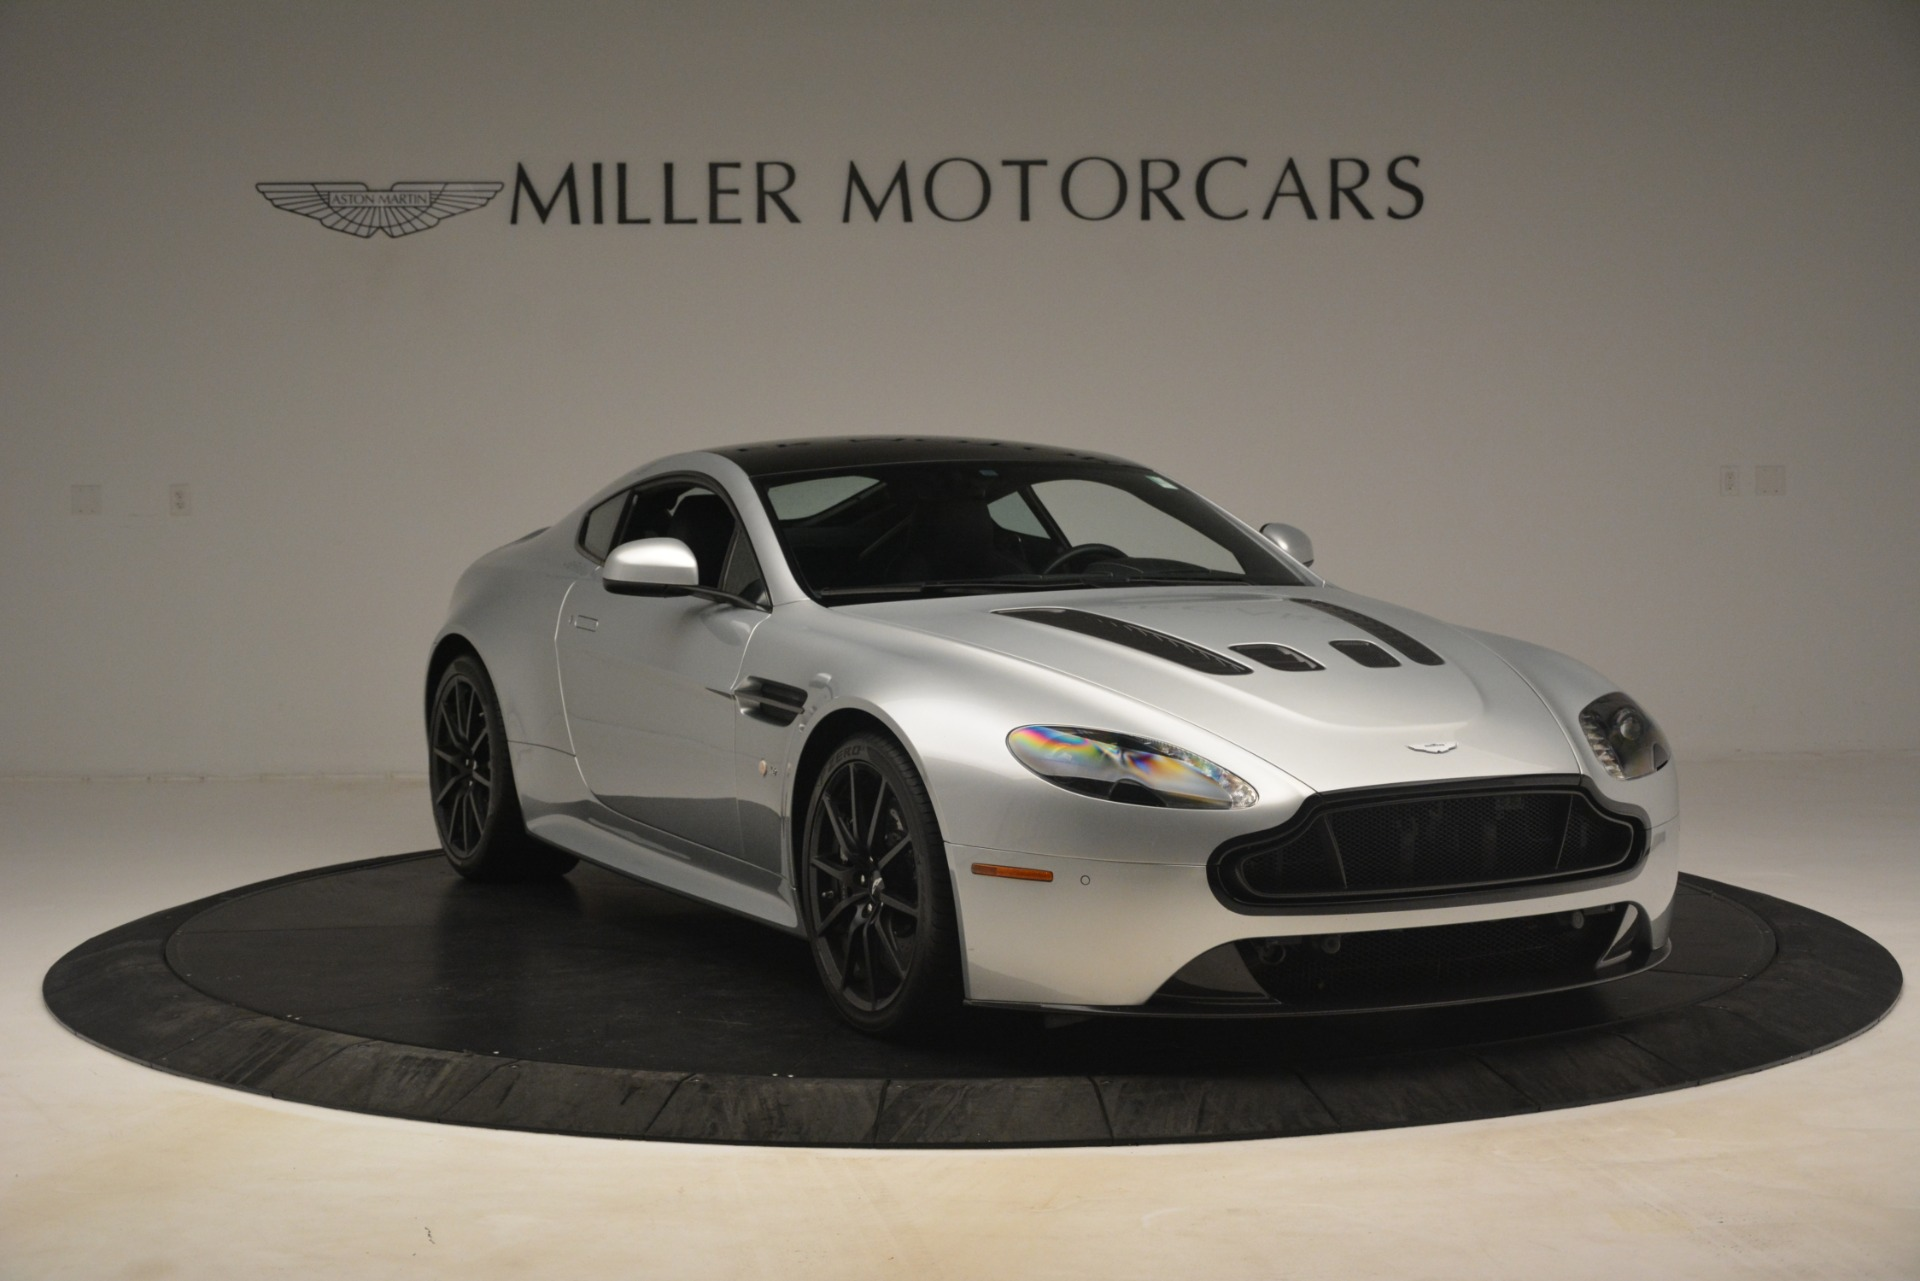 Used 2015 Aston Martin V12 Vantage S Coupe For Sale In Greenwich, CT. Alfa Romeo of Greenwich, 7577 3206_p11